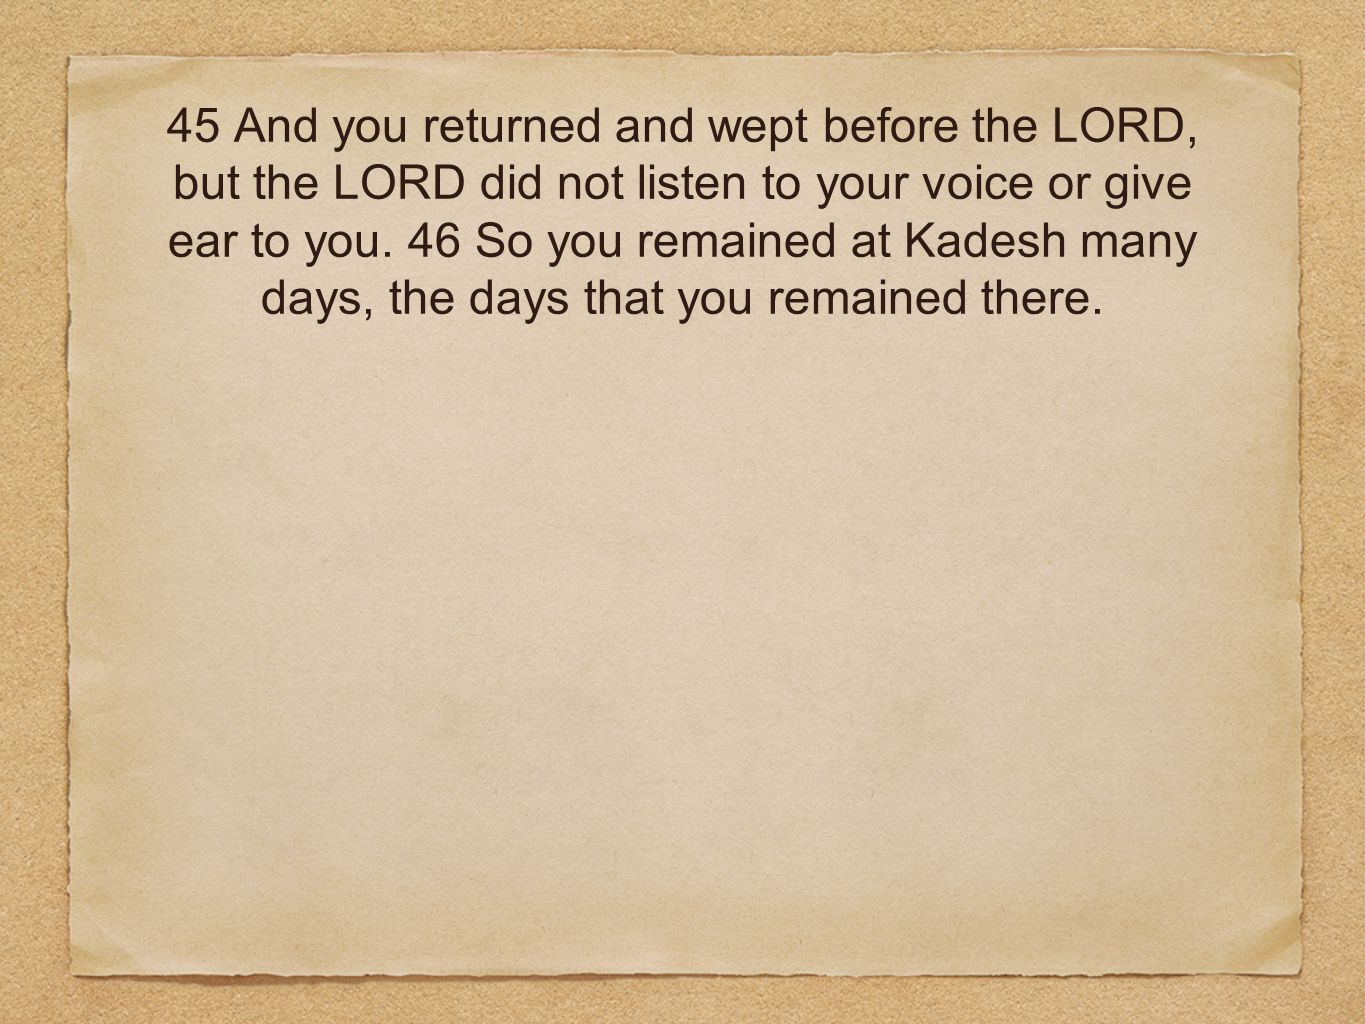 45 And you returned and wept before the LORD, but the LORD did not listen to your voice or give ear to you.